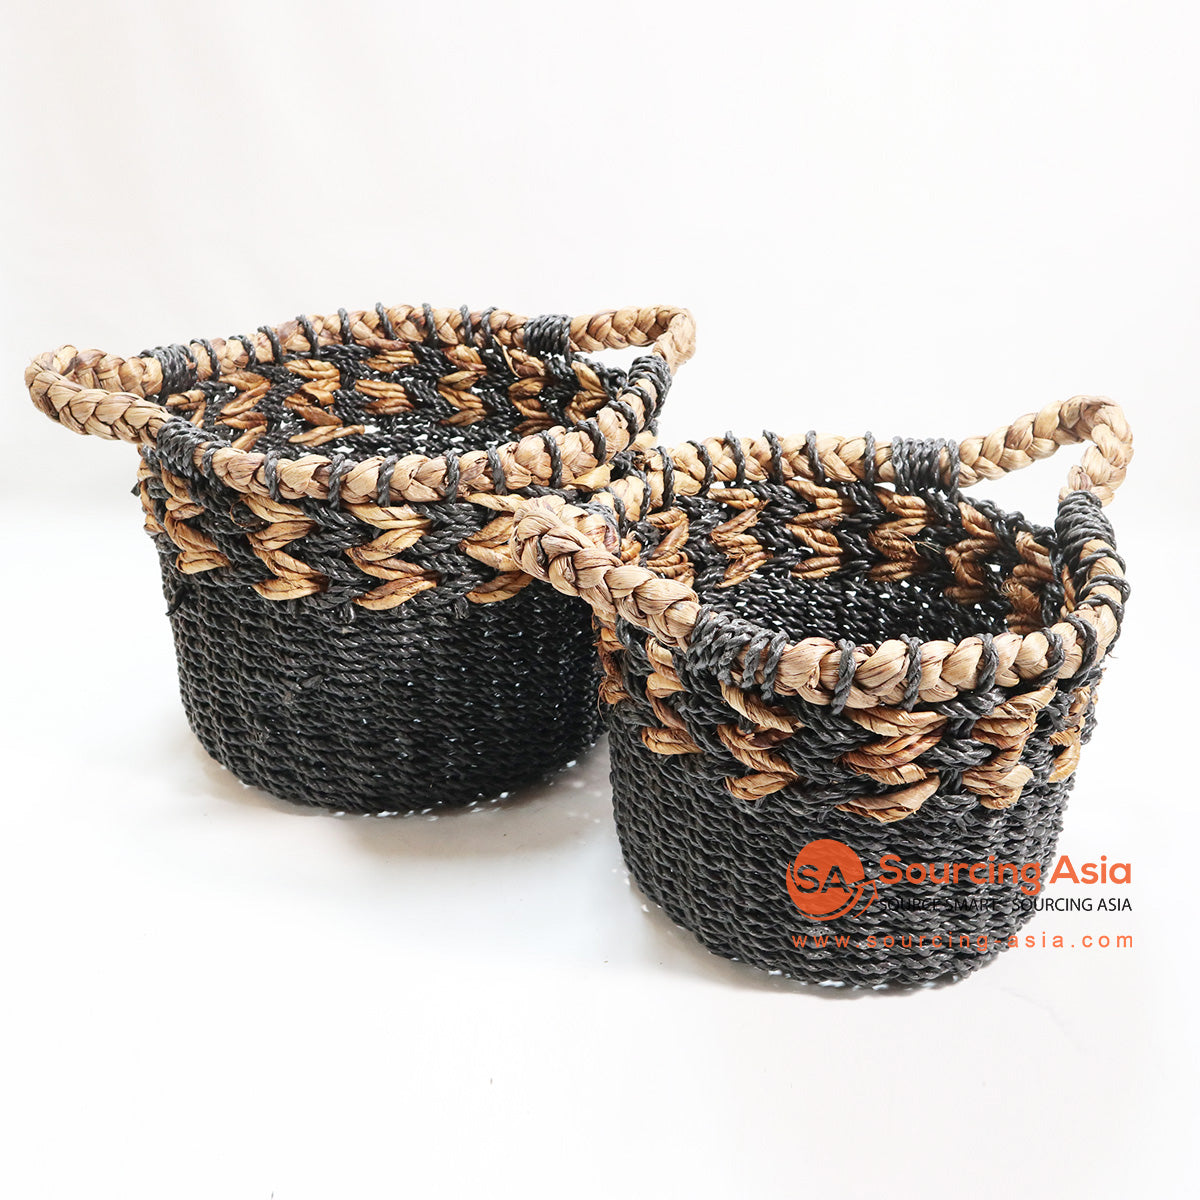 HBSC115-2 SET OF 2 BLACK SEA GRASS AND WATER HYACINTH BASKETS